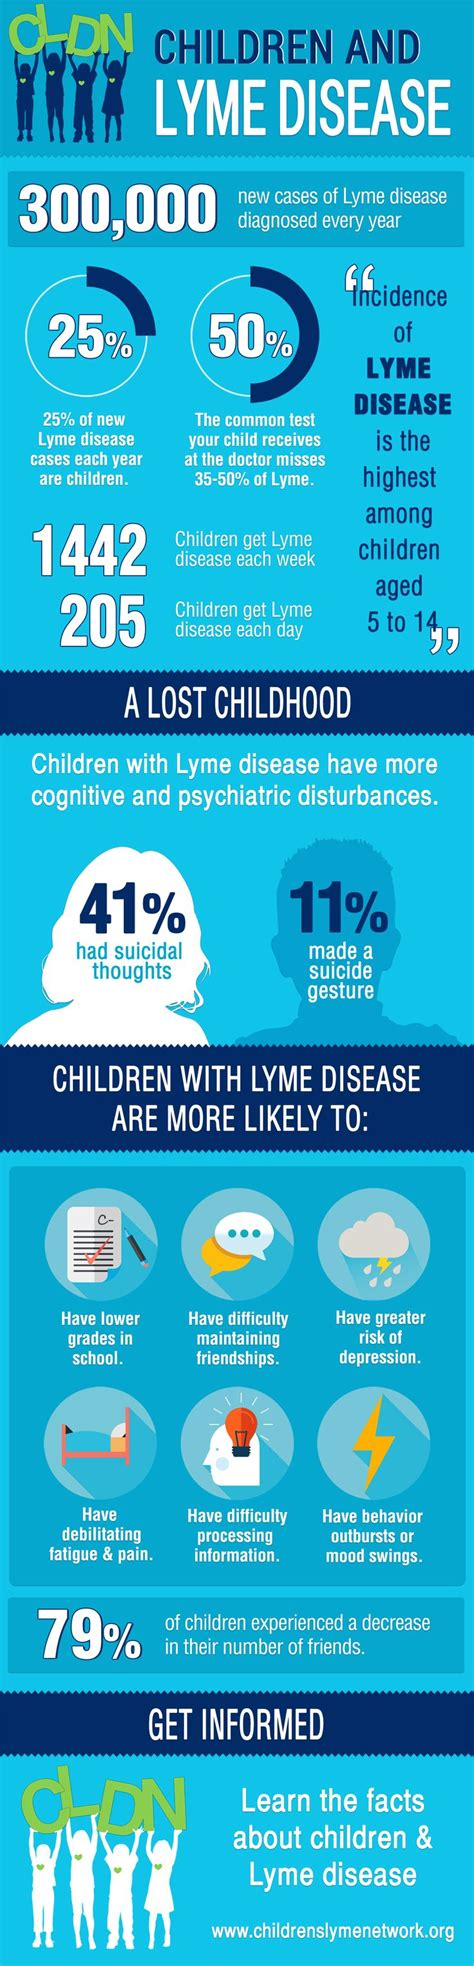 chronic lyme disease health news tips trends 10 best images about facts about lyme on pinterest